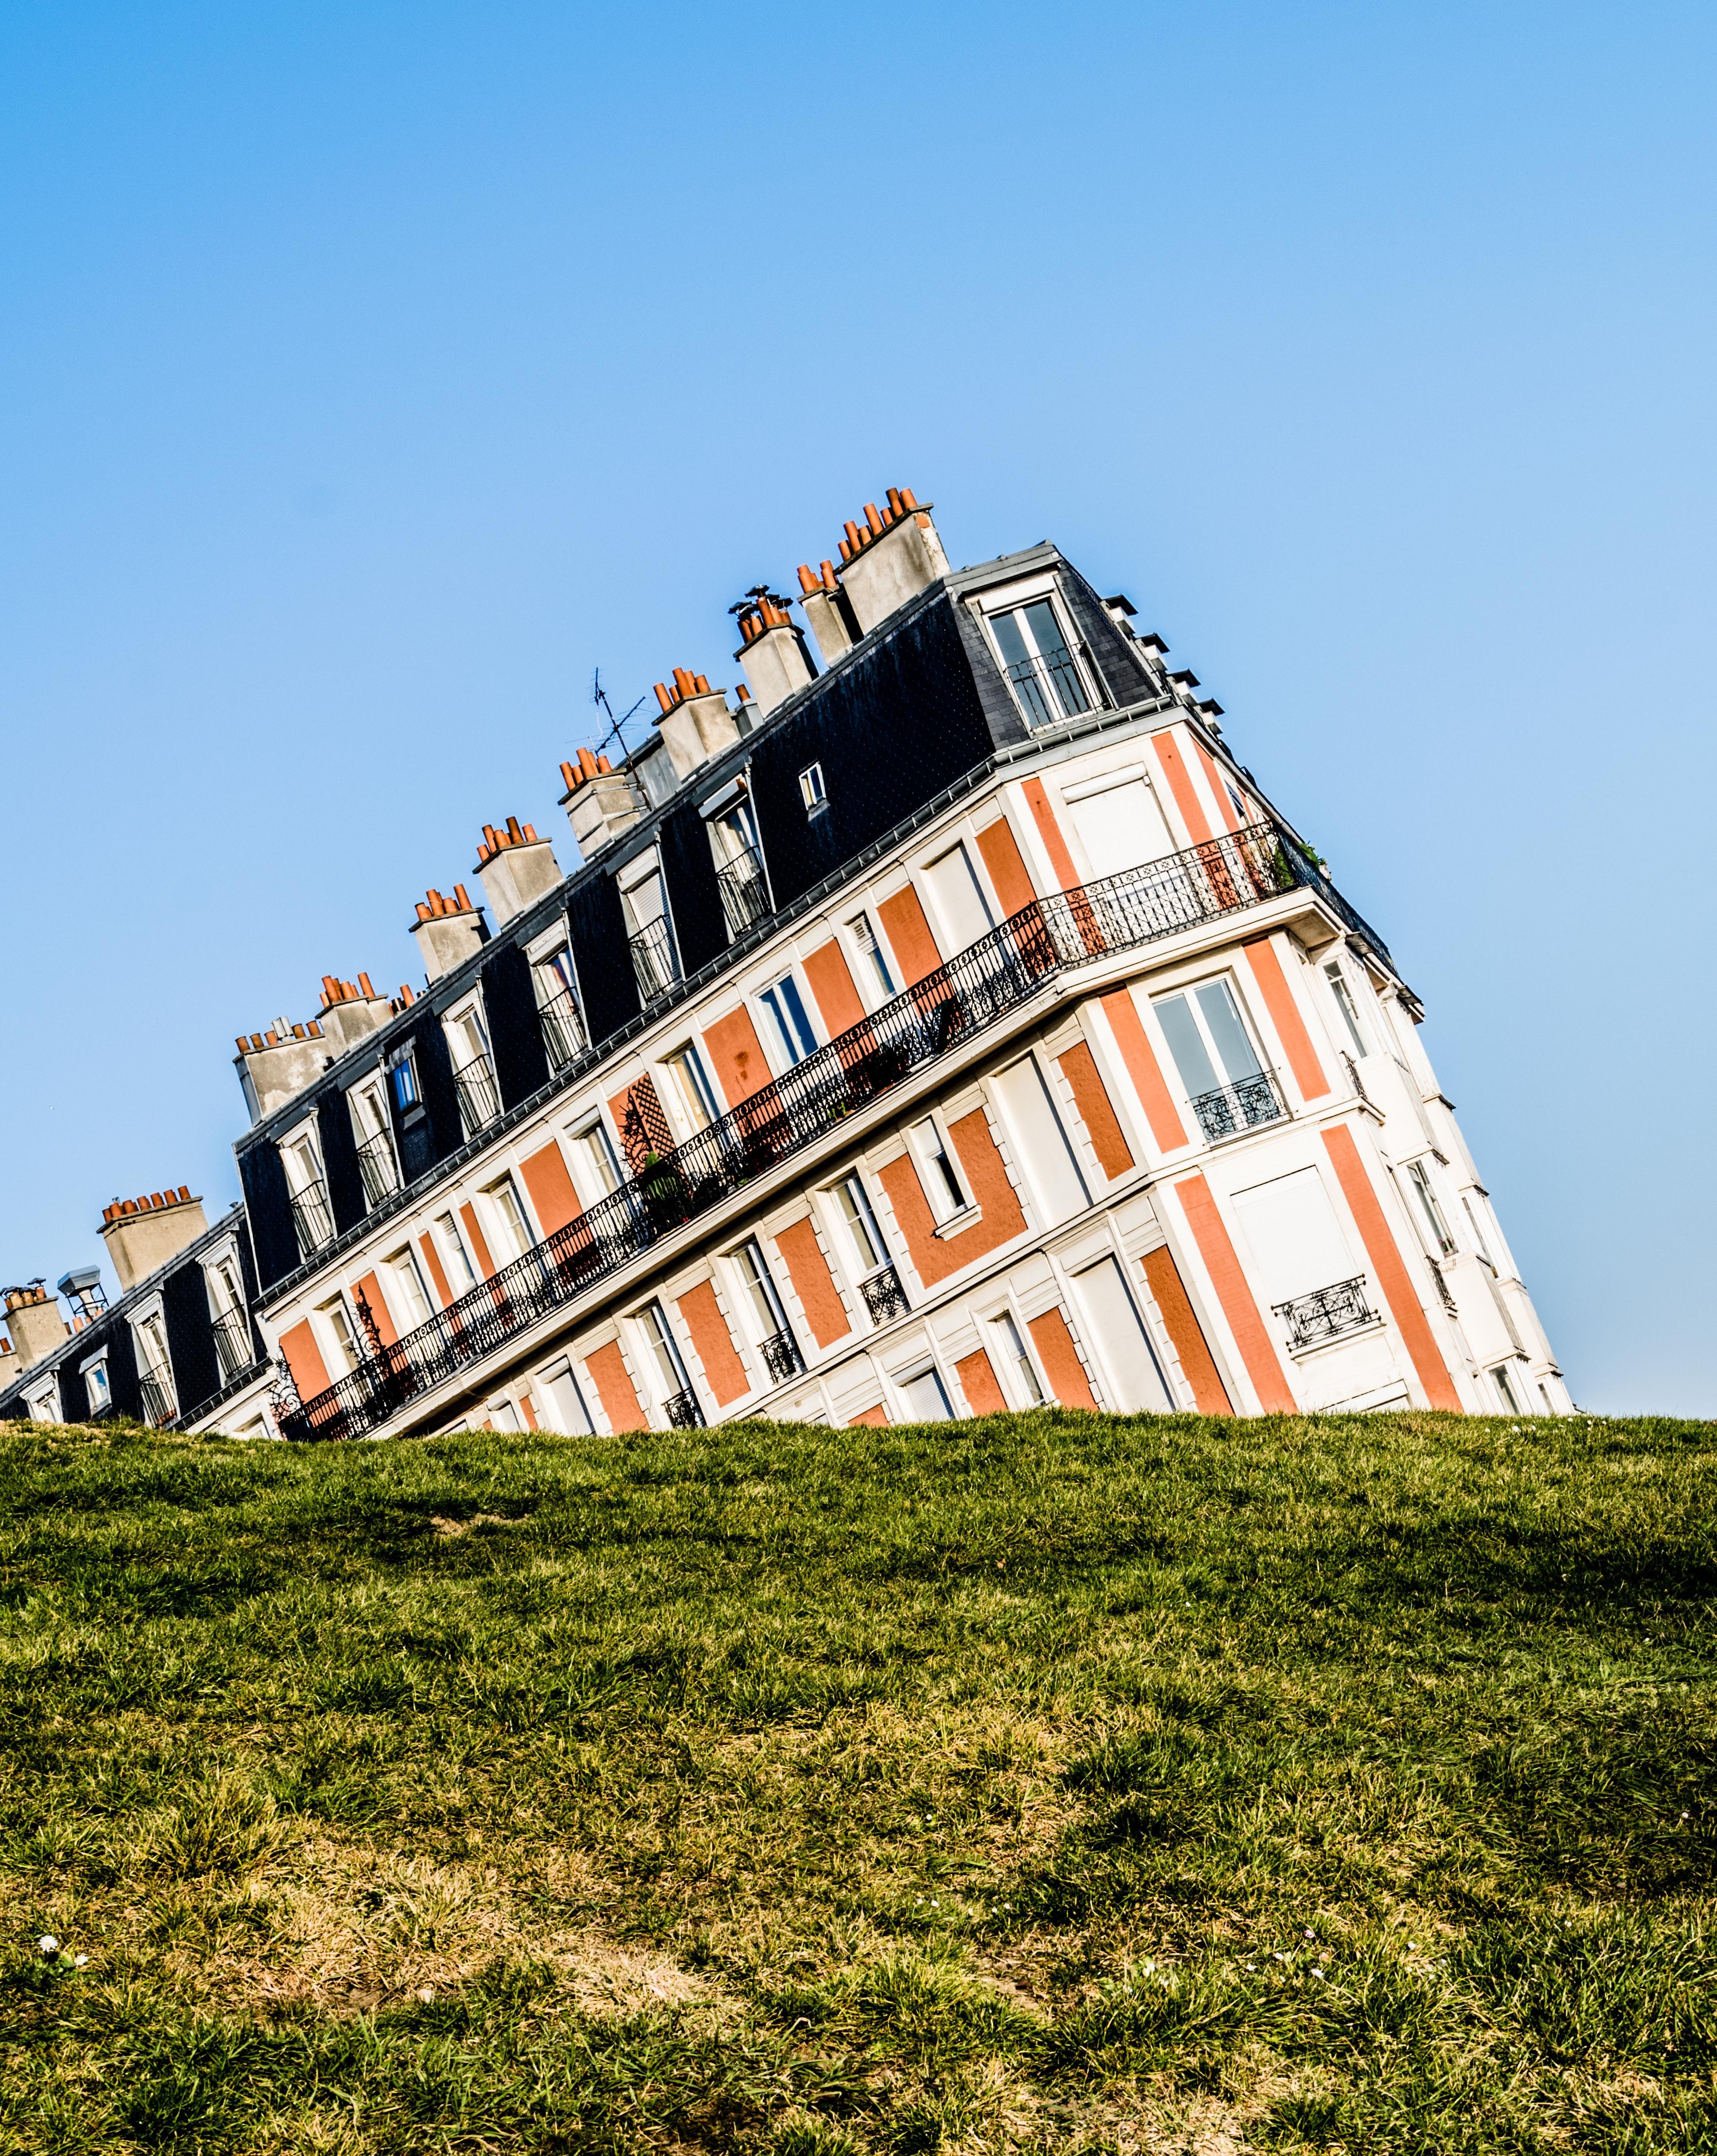 An angular shot of an apartment building with French architecture in Paris.